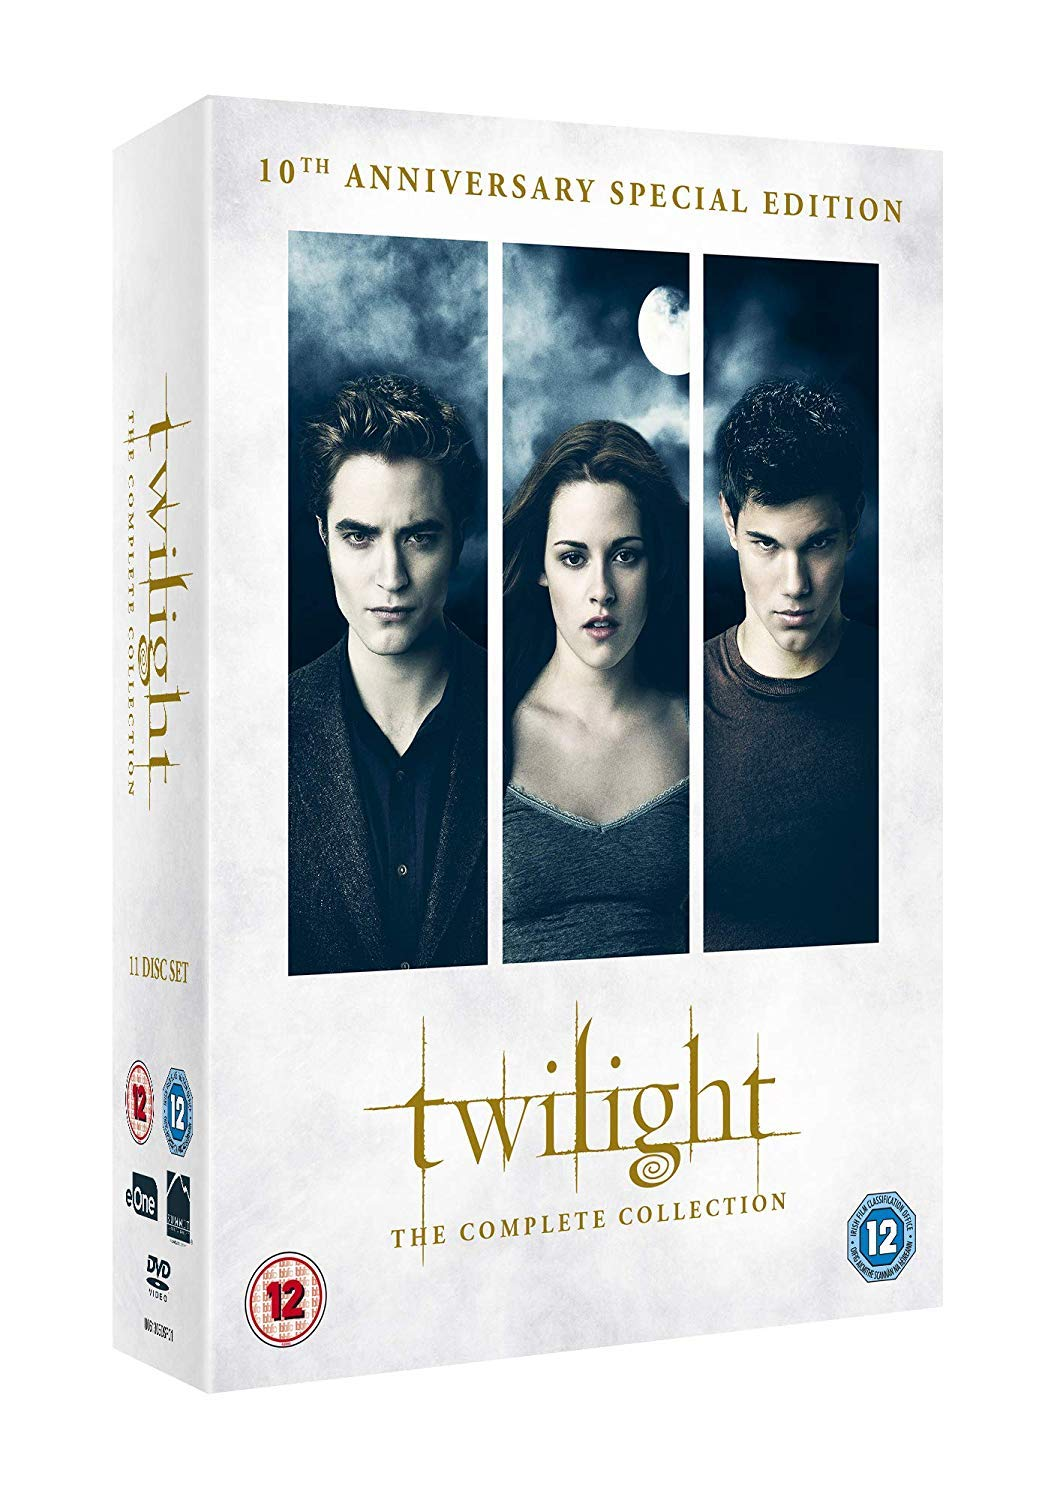 NEW The Twilight Saga - service Complete Anniversary Collection: Sp 10th